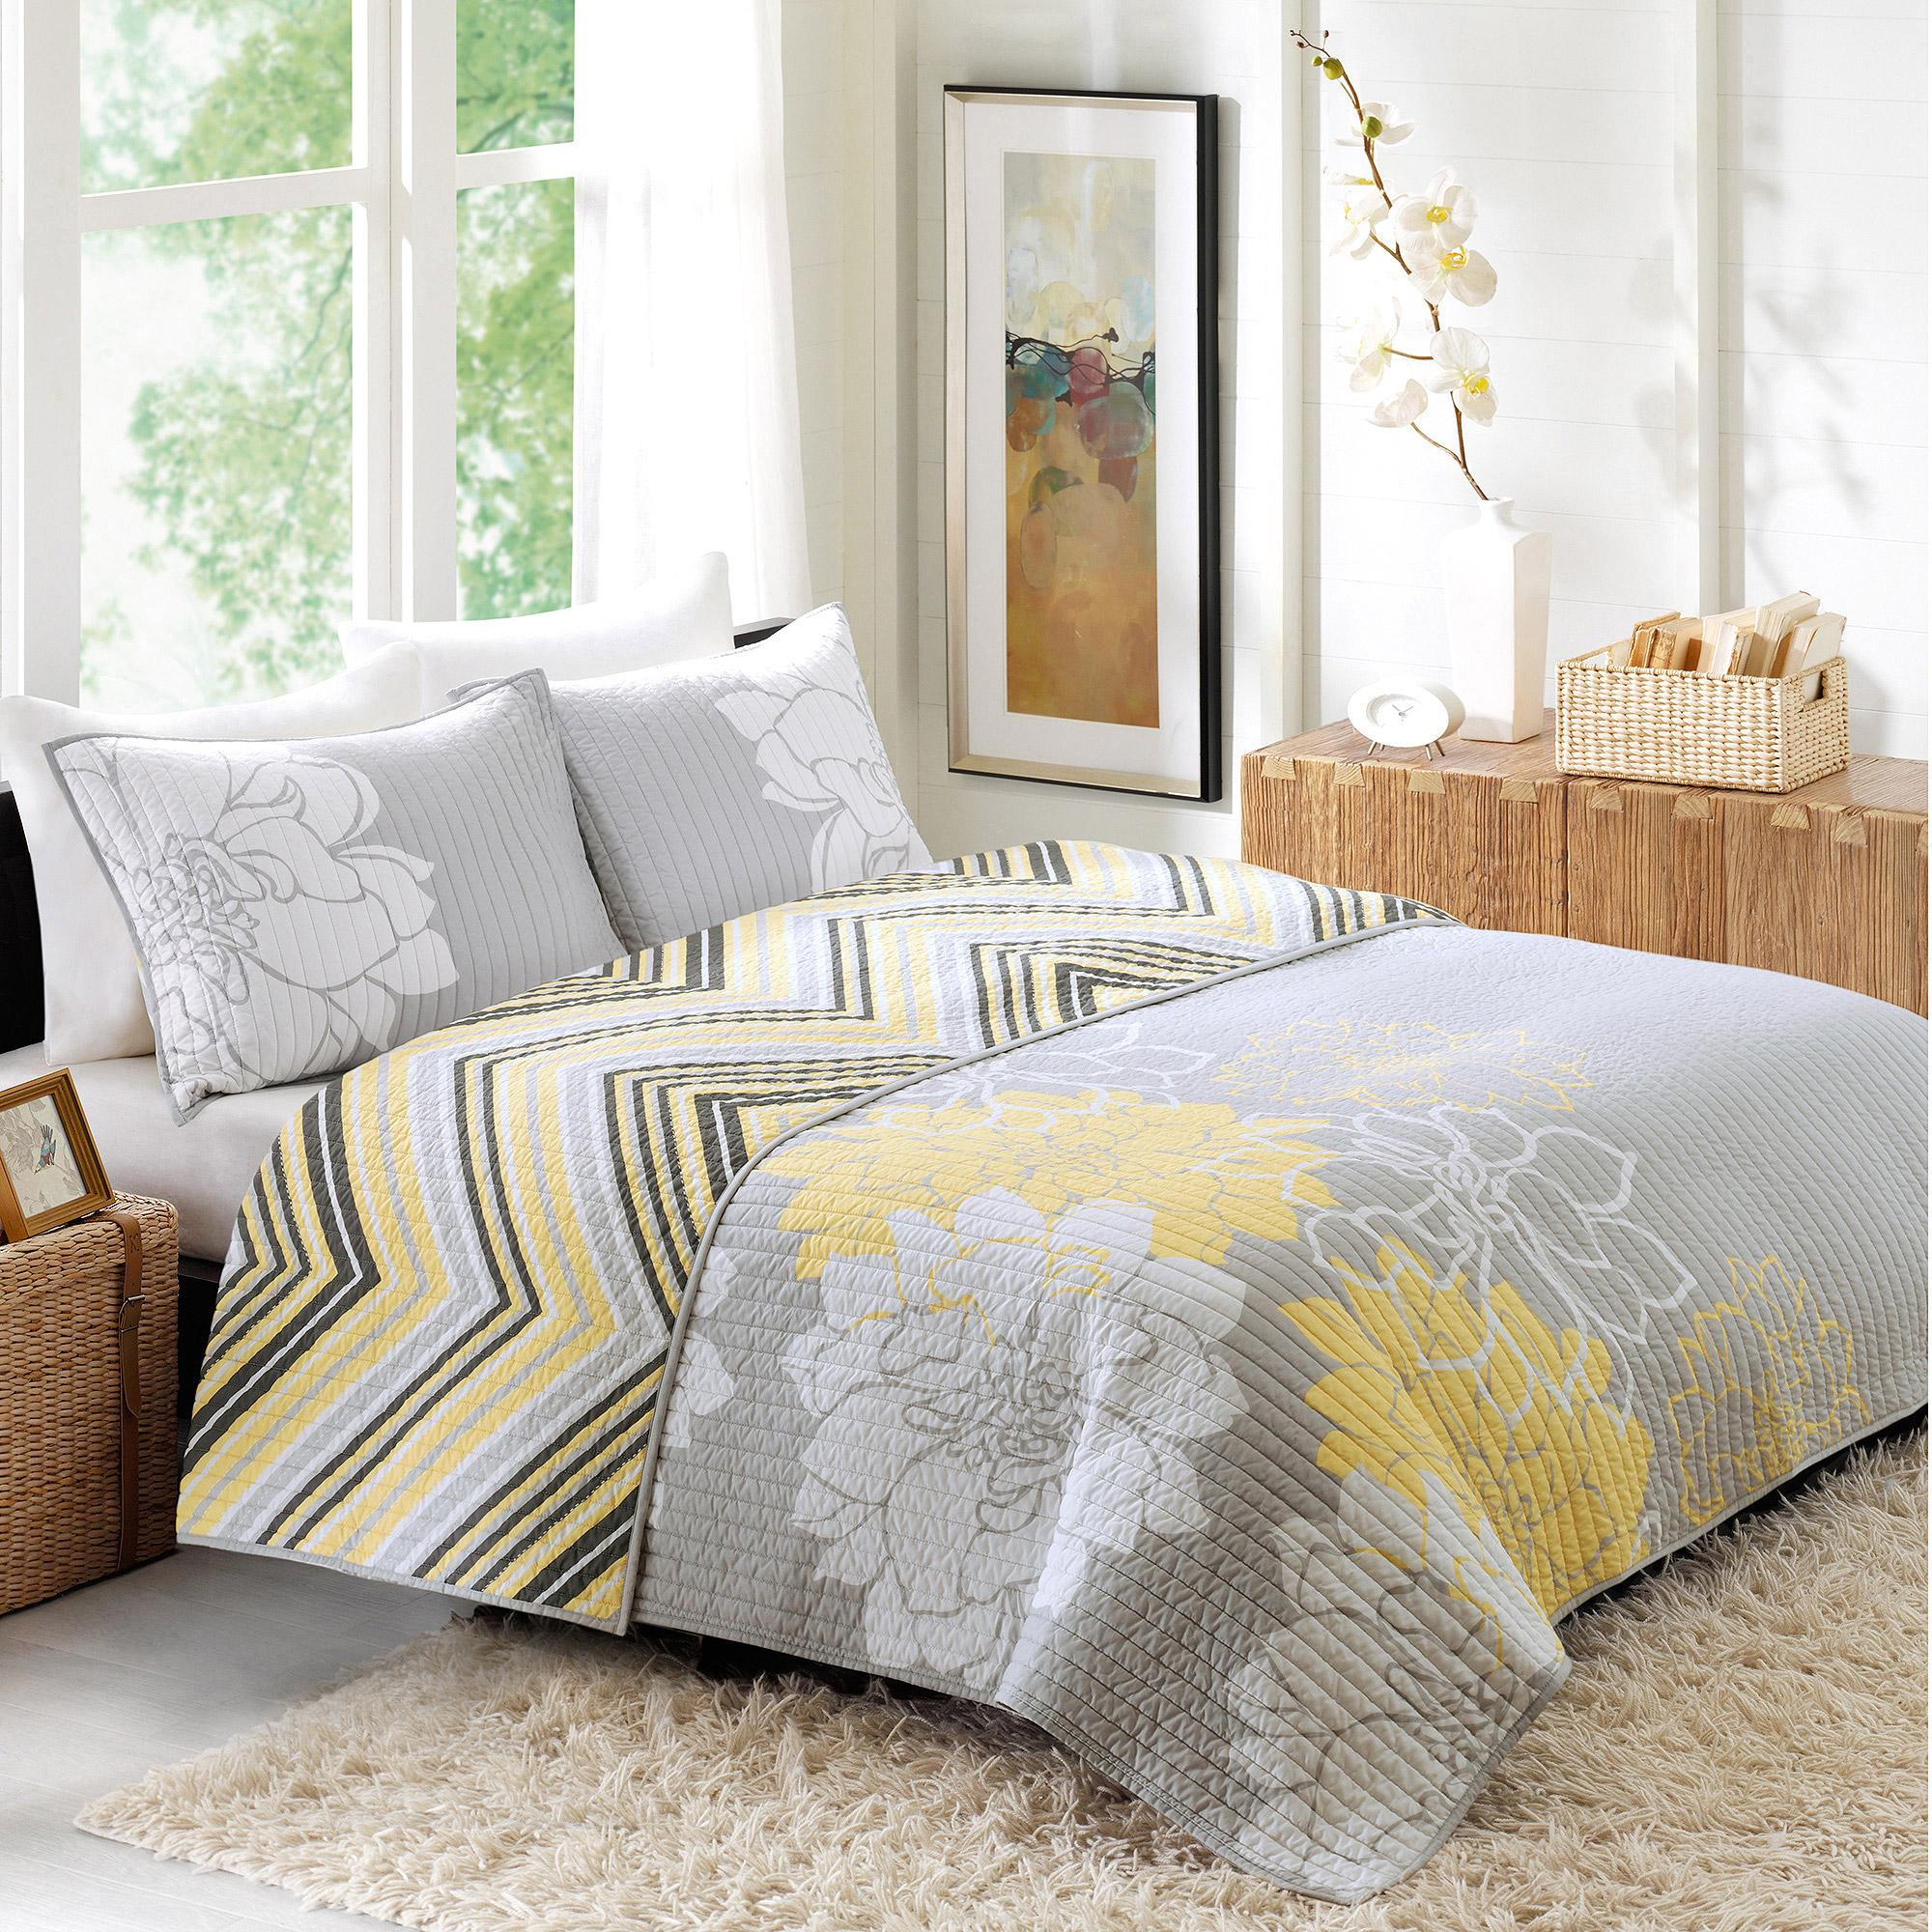 Gray And Yellow Bedroom: Better Homes And Garden Comforter Sets